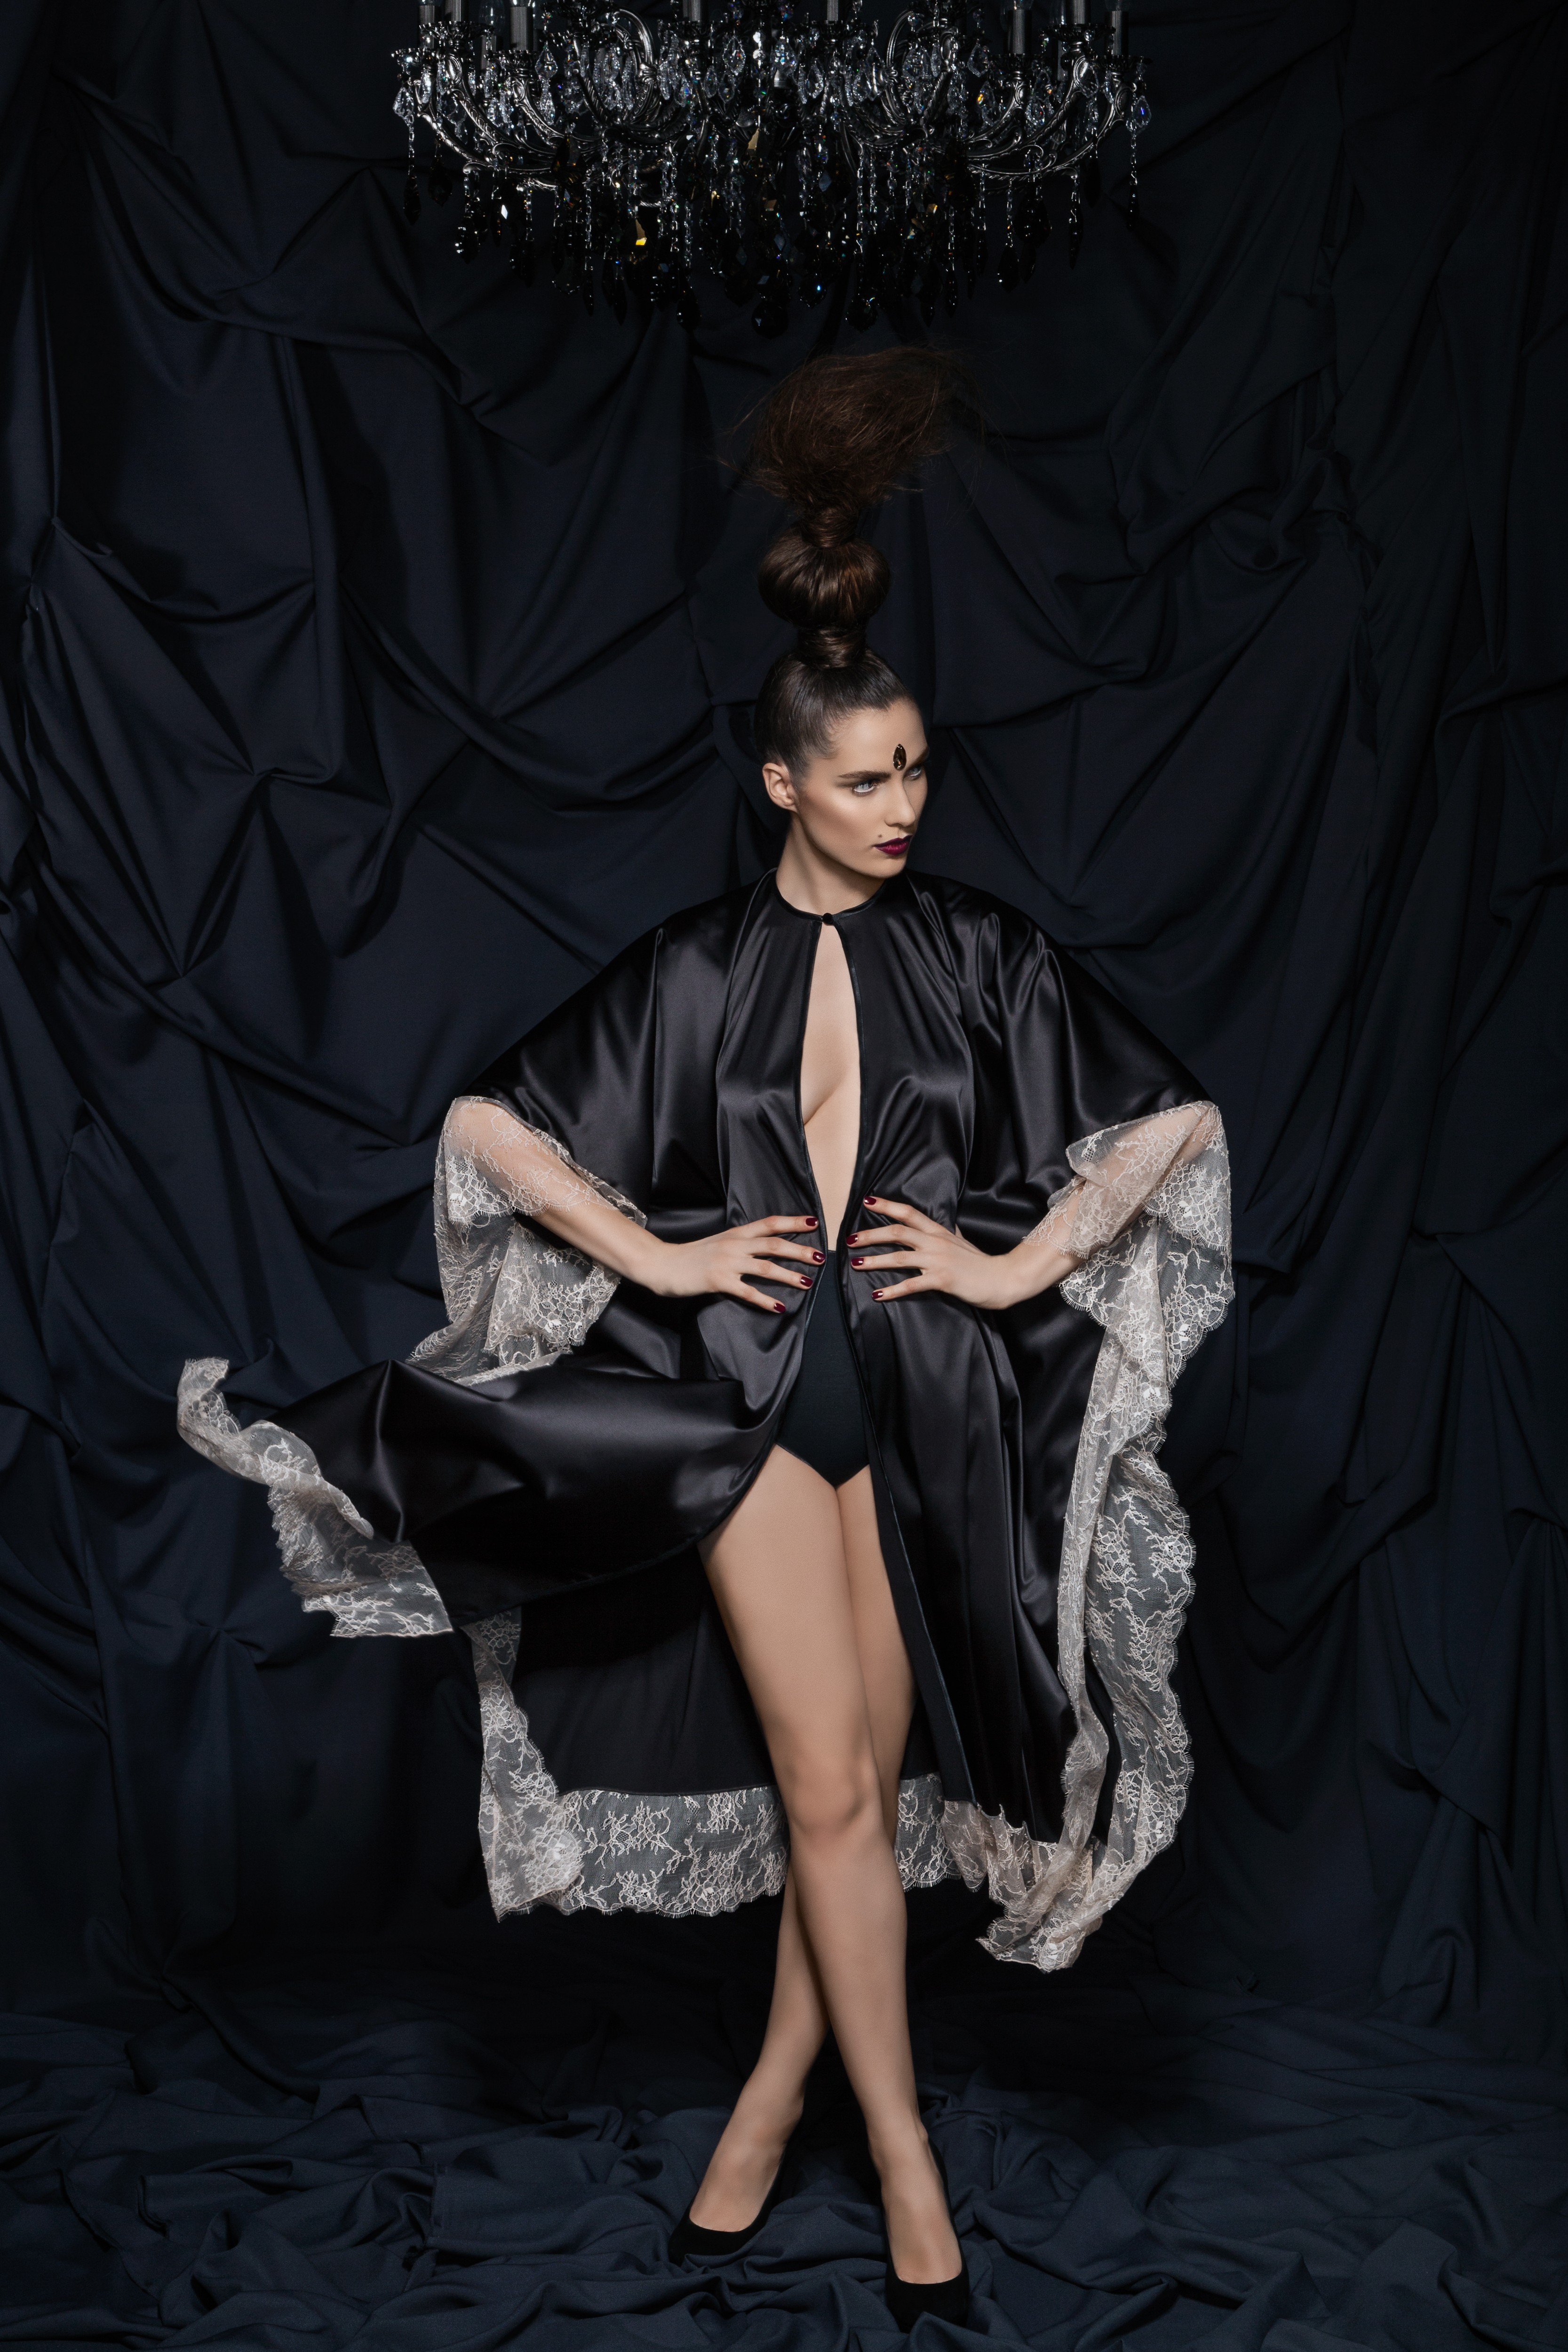 Black Tourmaline robe by Amoralle